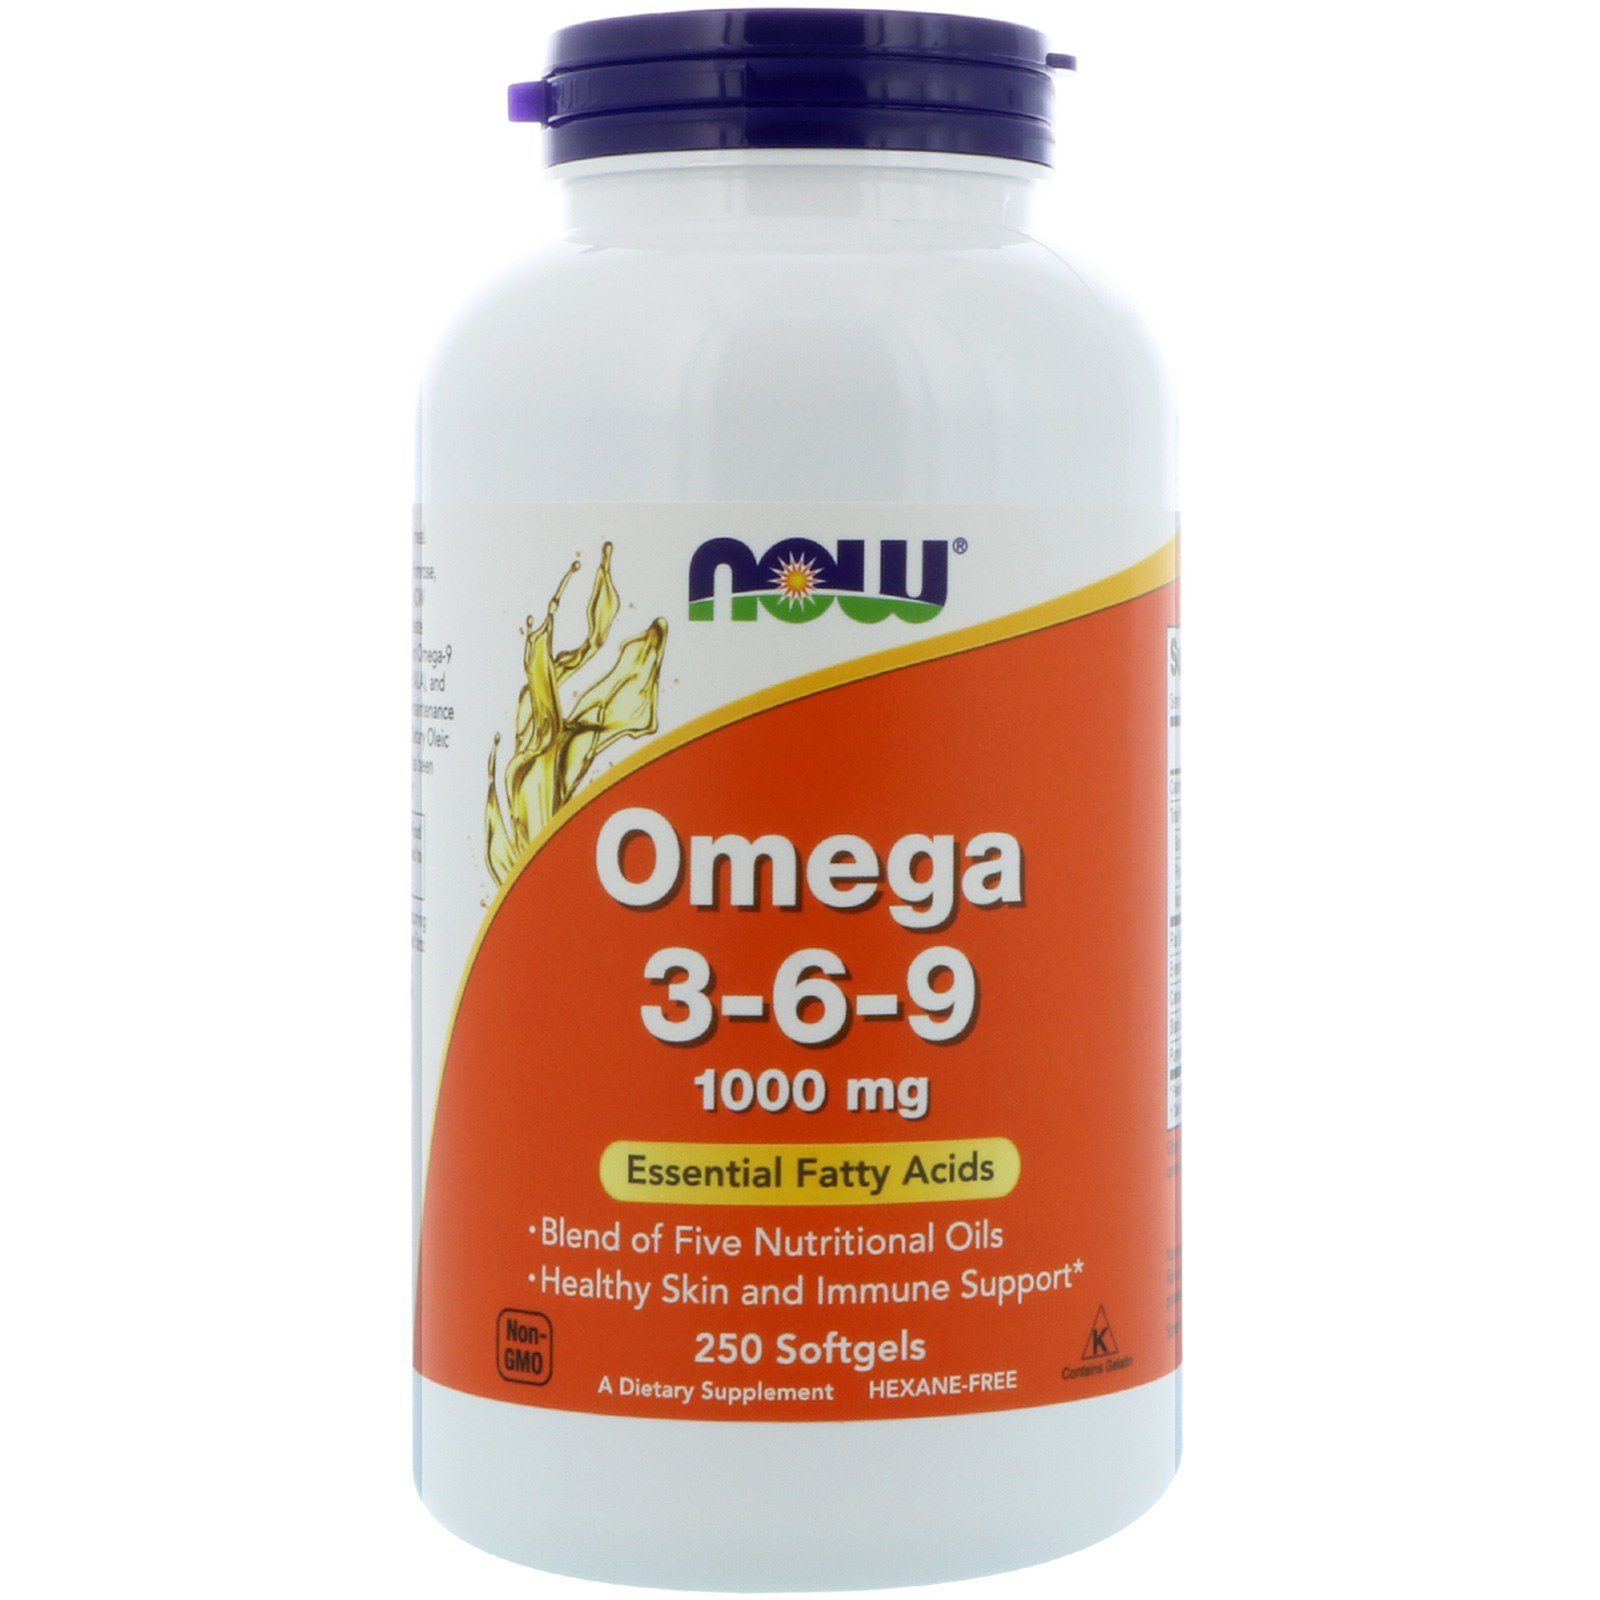 Now Foods NOW-01837 Омега 3 6 9, Omega 3-6-9, Now Foods, 1000 мг, 250 гелевых капсул, (NOW-01837)